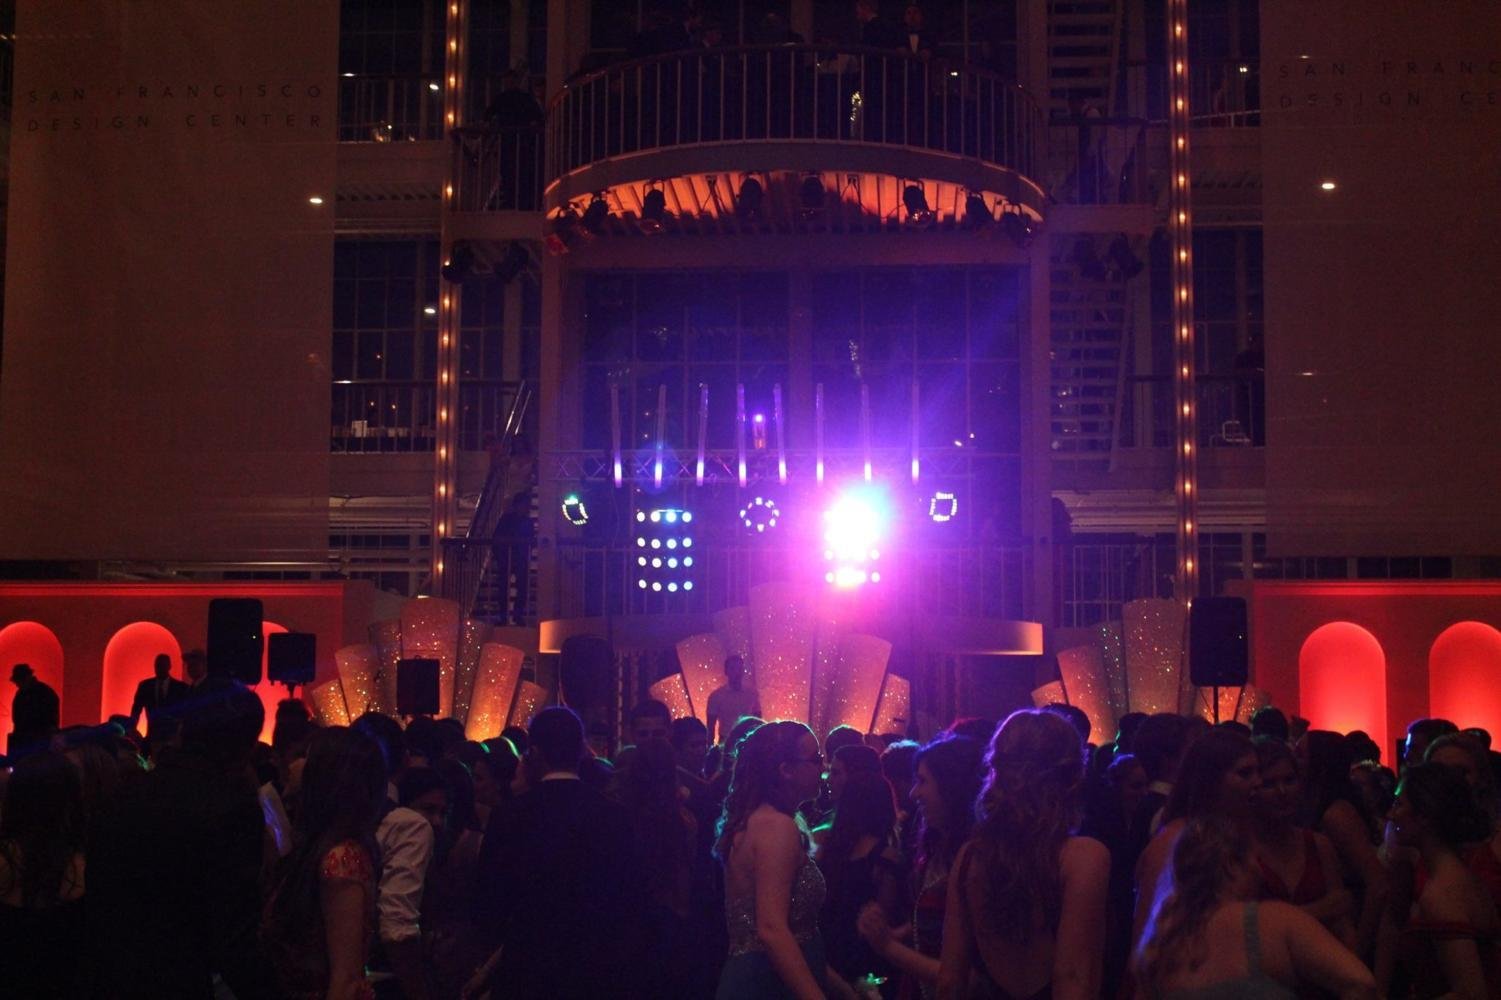 Carlmont's 2016 prom took place at the San Francisco Gallaria and will also be the location for 2019. This year prom will take place on April 27 at the San Francisco City Hall.